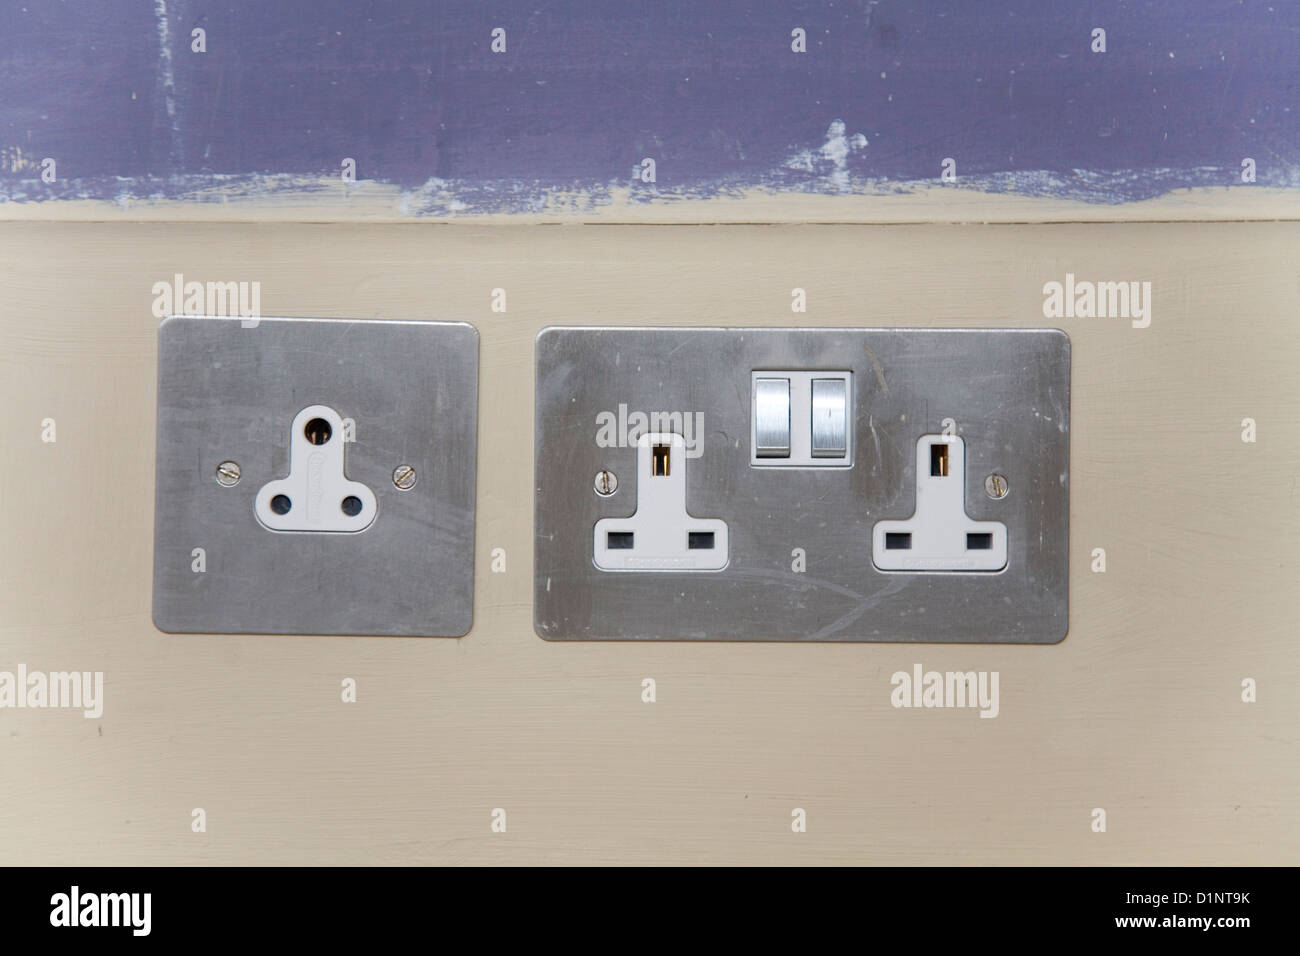 Old Electric Socket Wiring Diagram And Ebooks An Electrical Uk Round Pin Electricity Left For Lights Rh Alamy Com